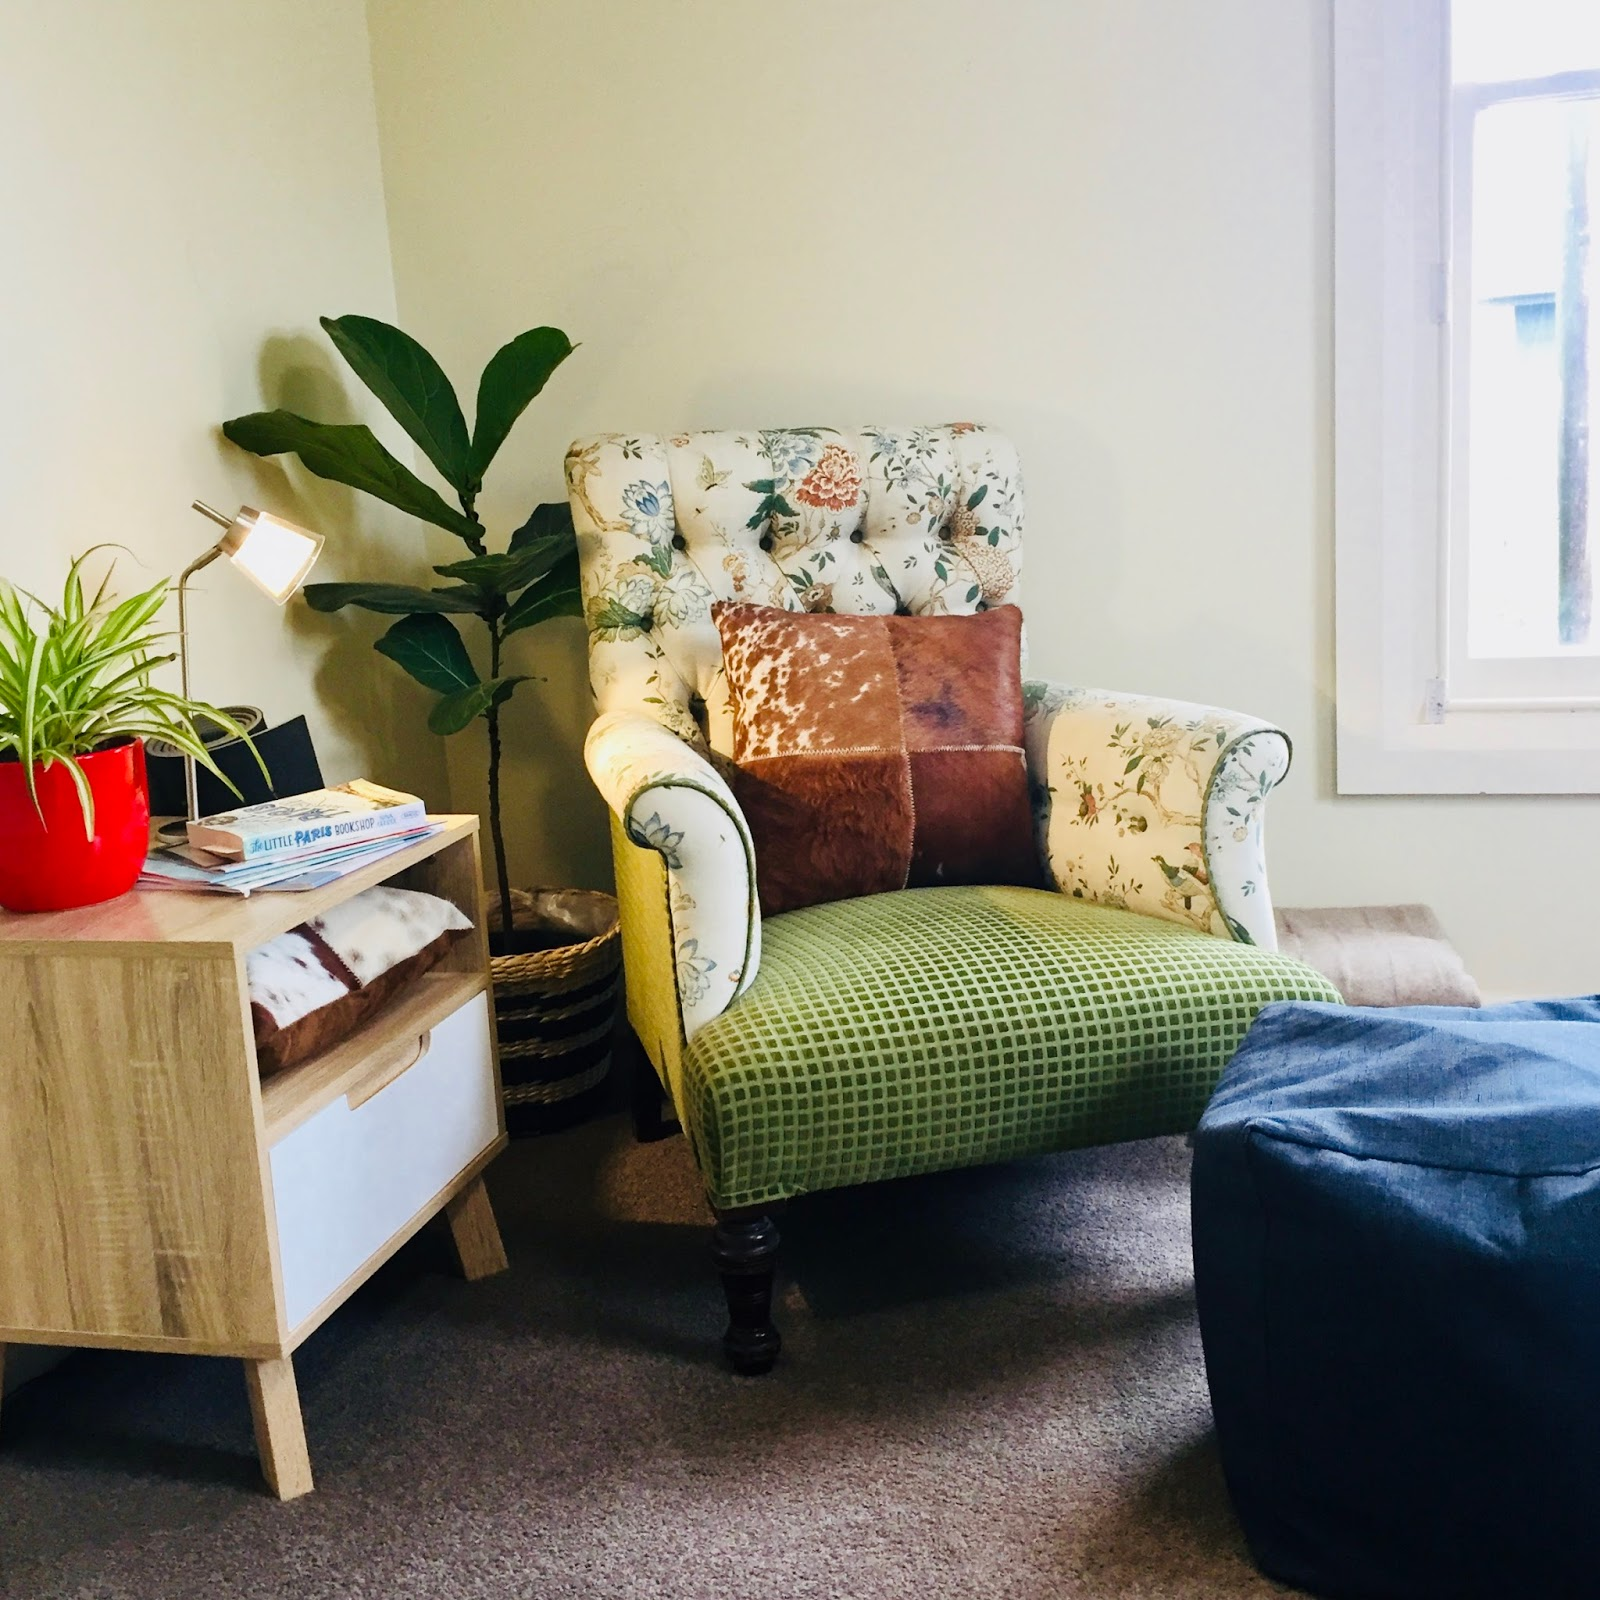 THE NEW READING NOOK